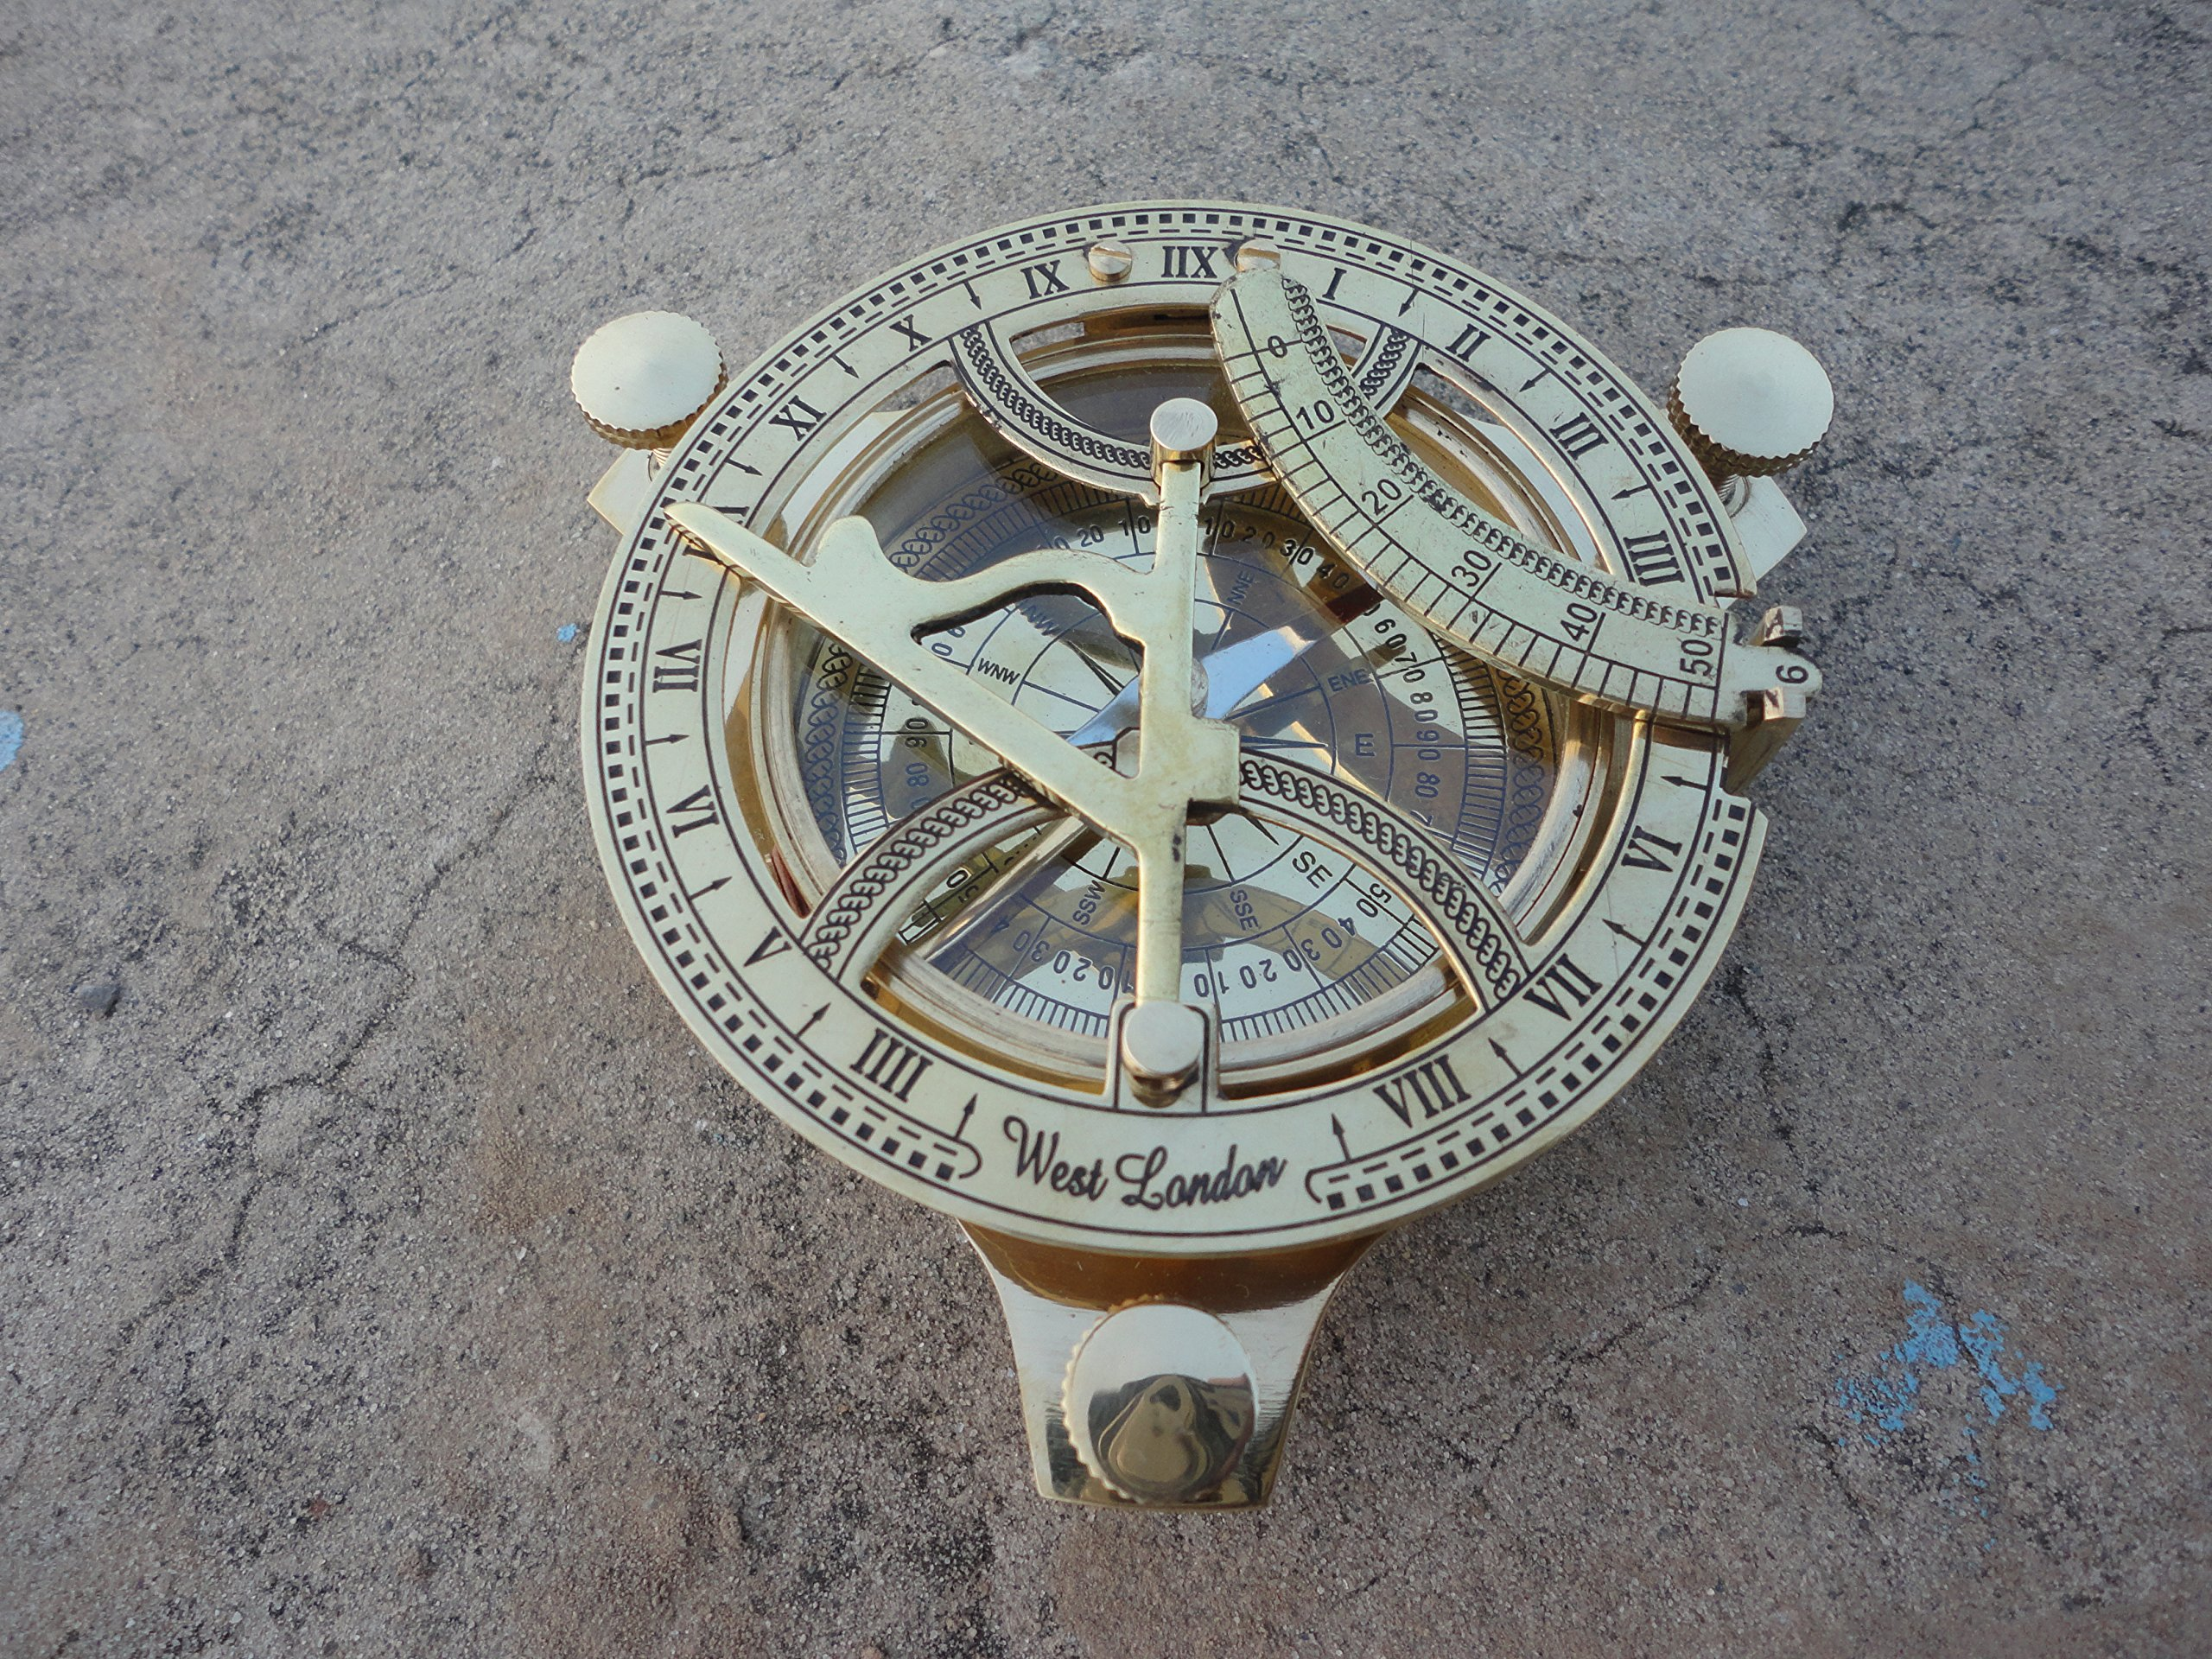 Sundial Compass Solid Brass by Era Collection Sundial Compass Decor|Sundial Compass Outdoor|4 Inch Sundial Compass|Sundial Compass Garden WEST LONDON Handmade Marine Nautical Antique Compass Navy Item